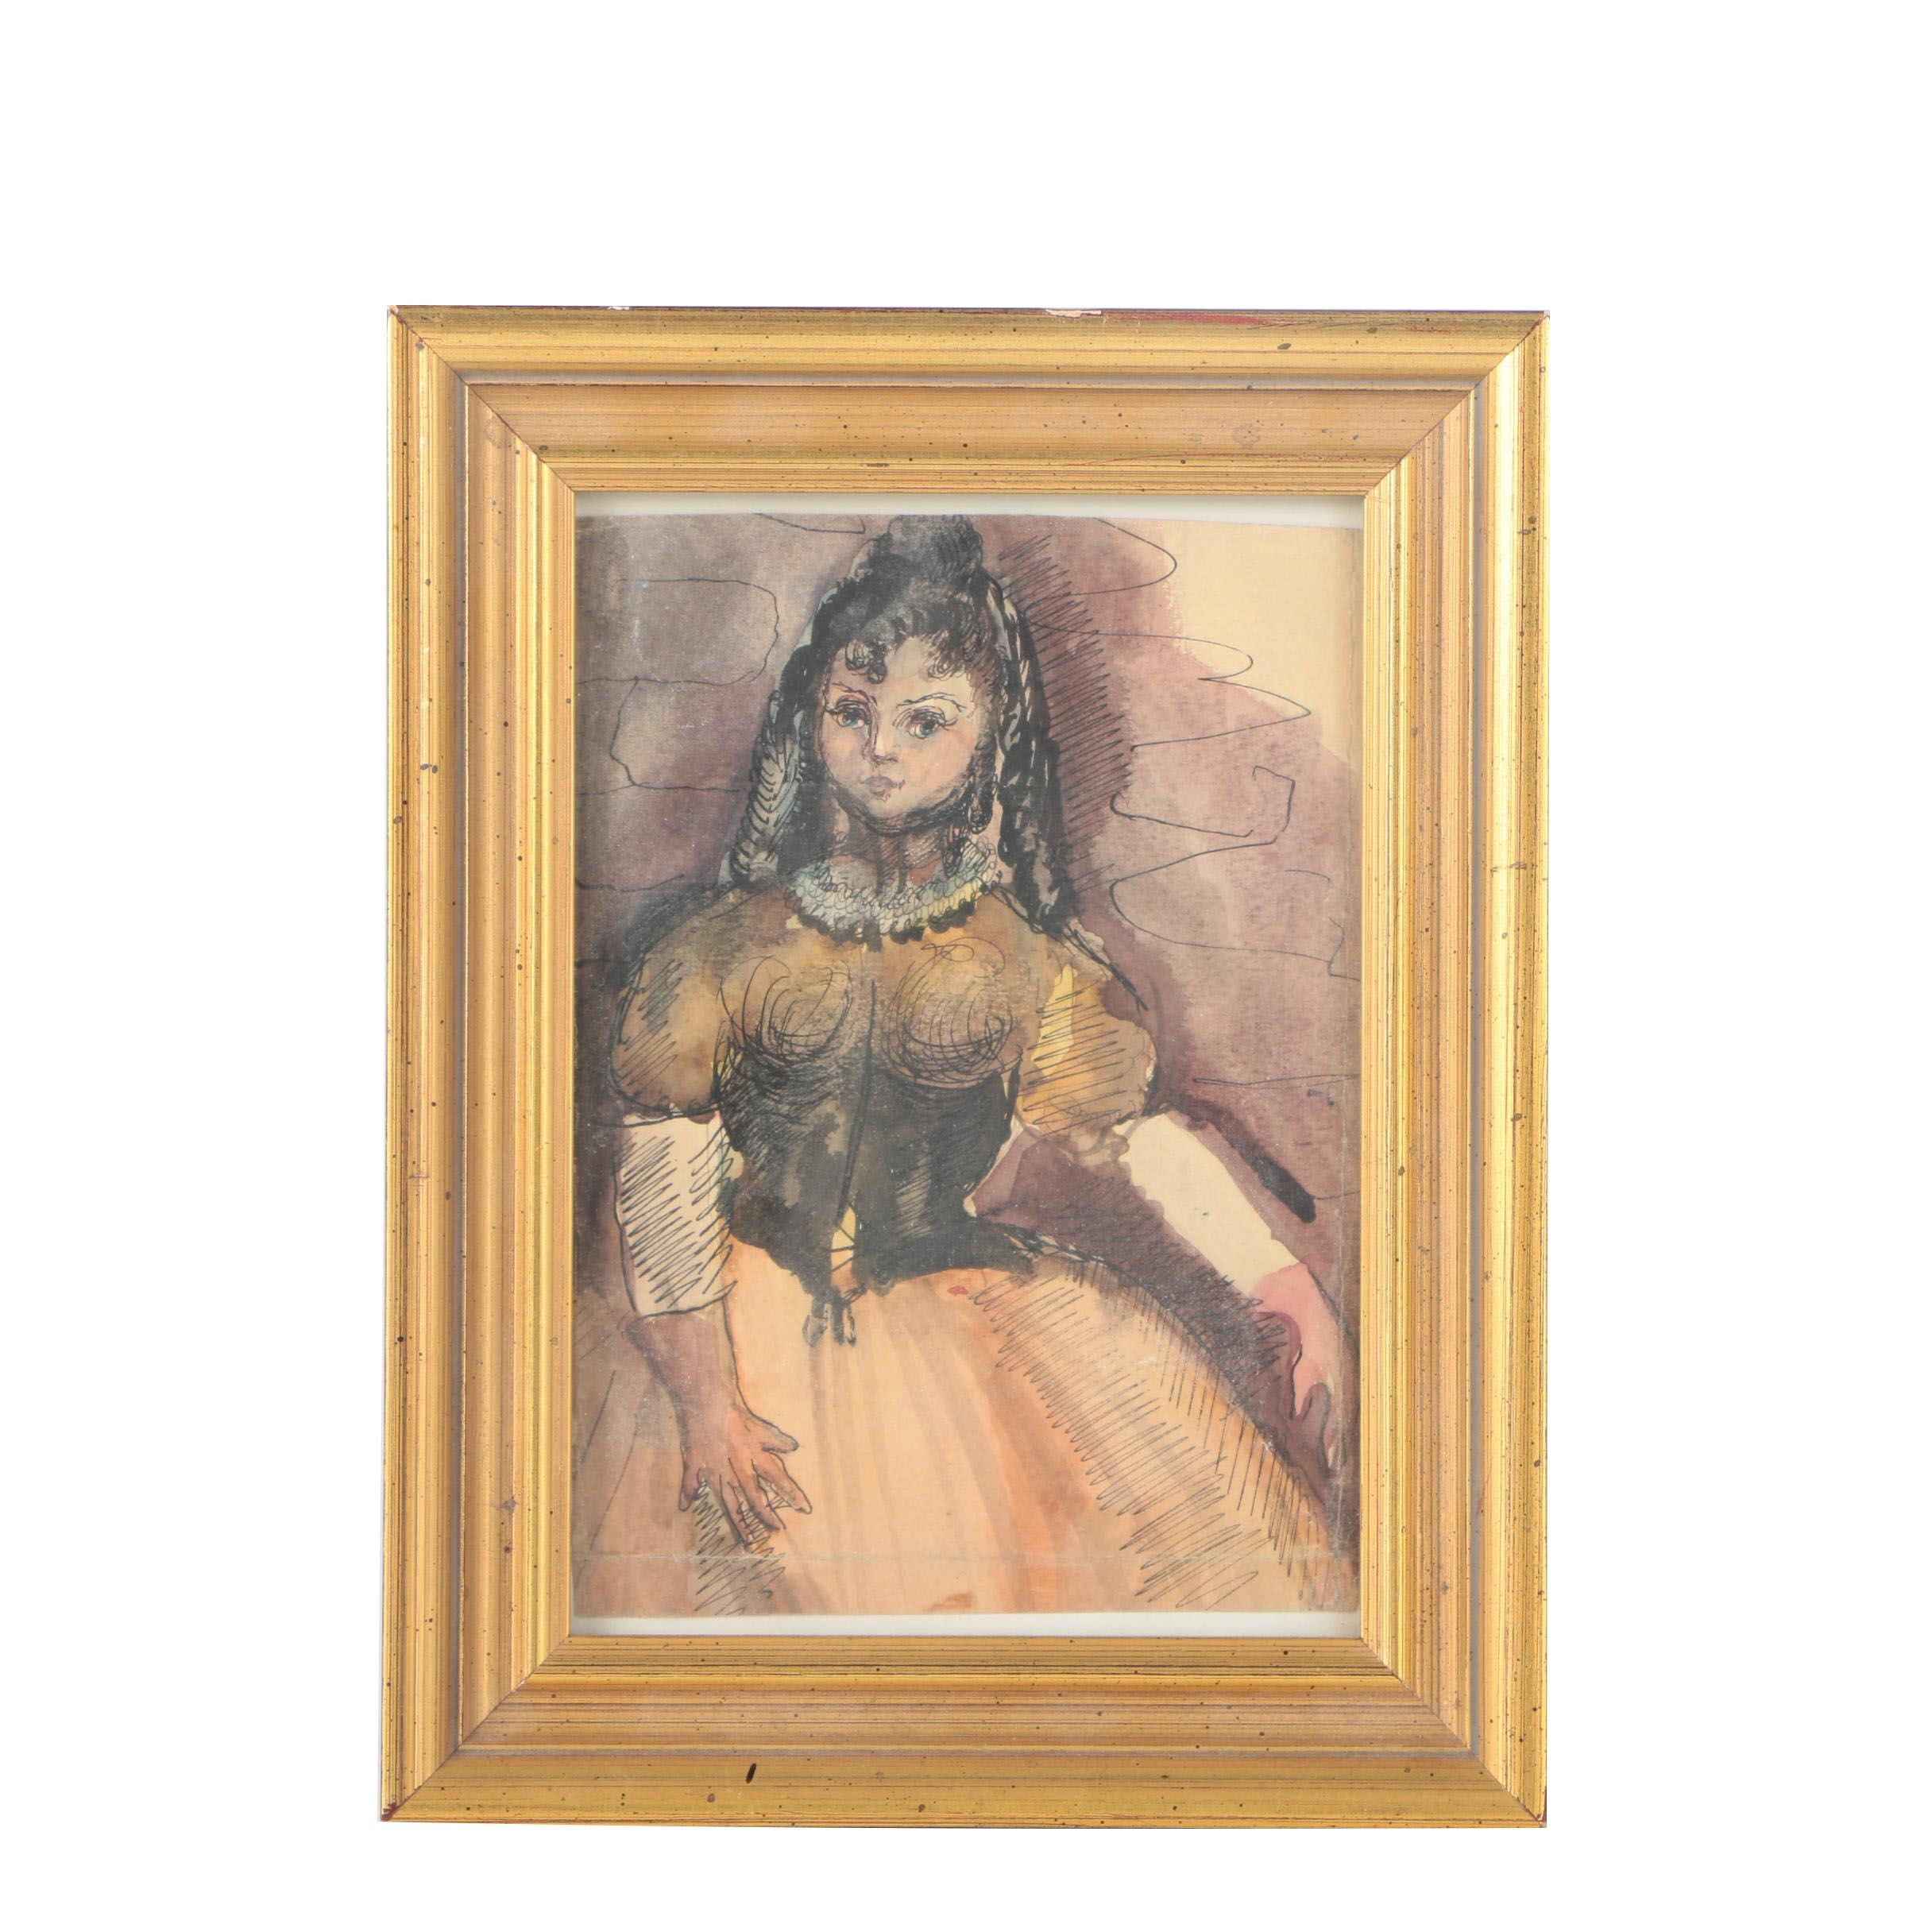 Framed Watercolor Painting of Young Woman